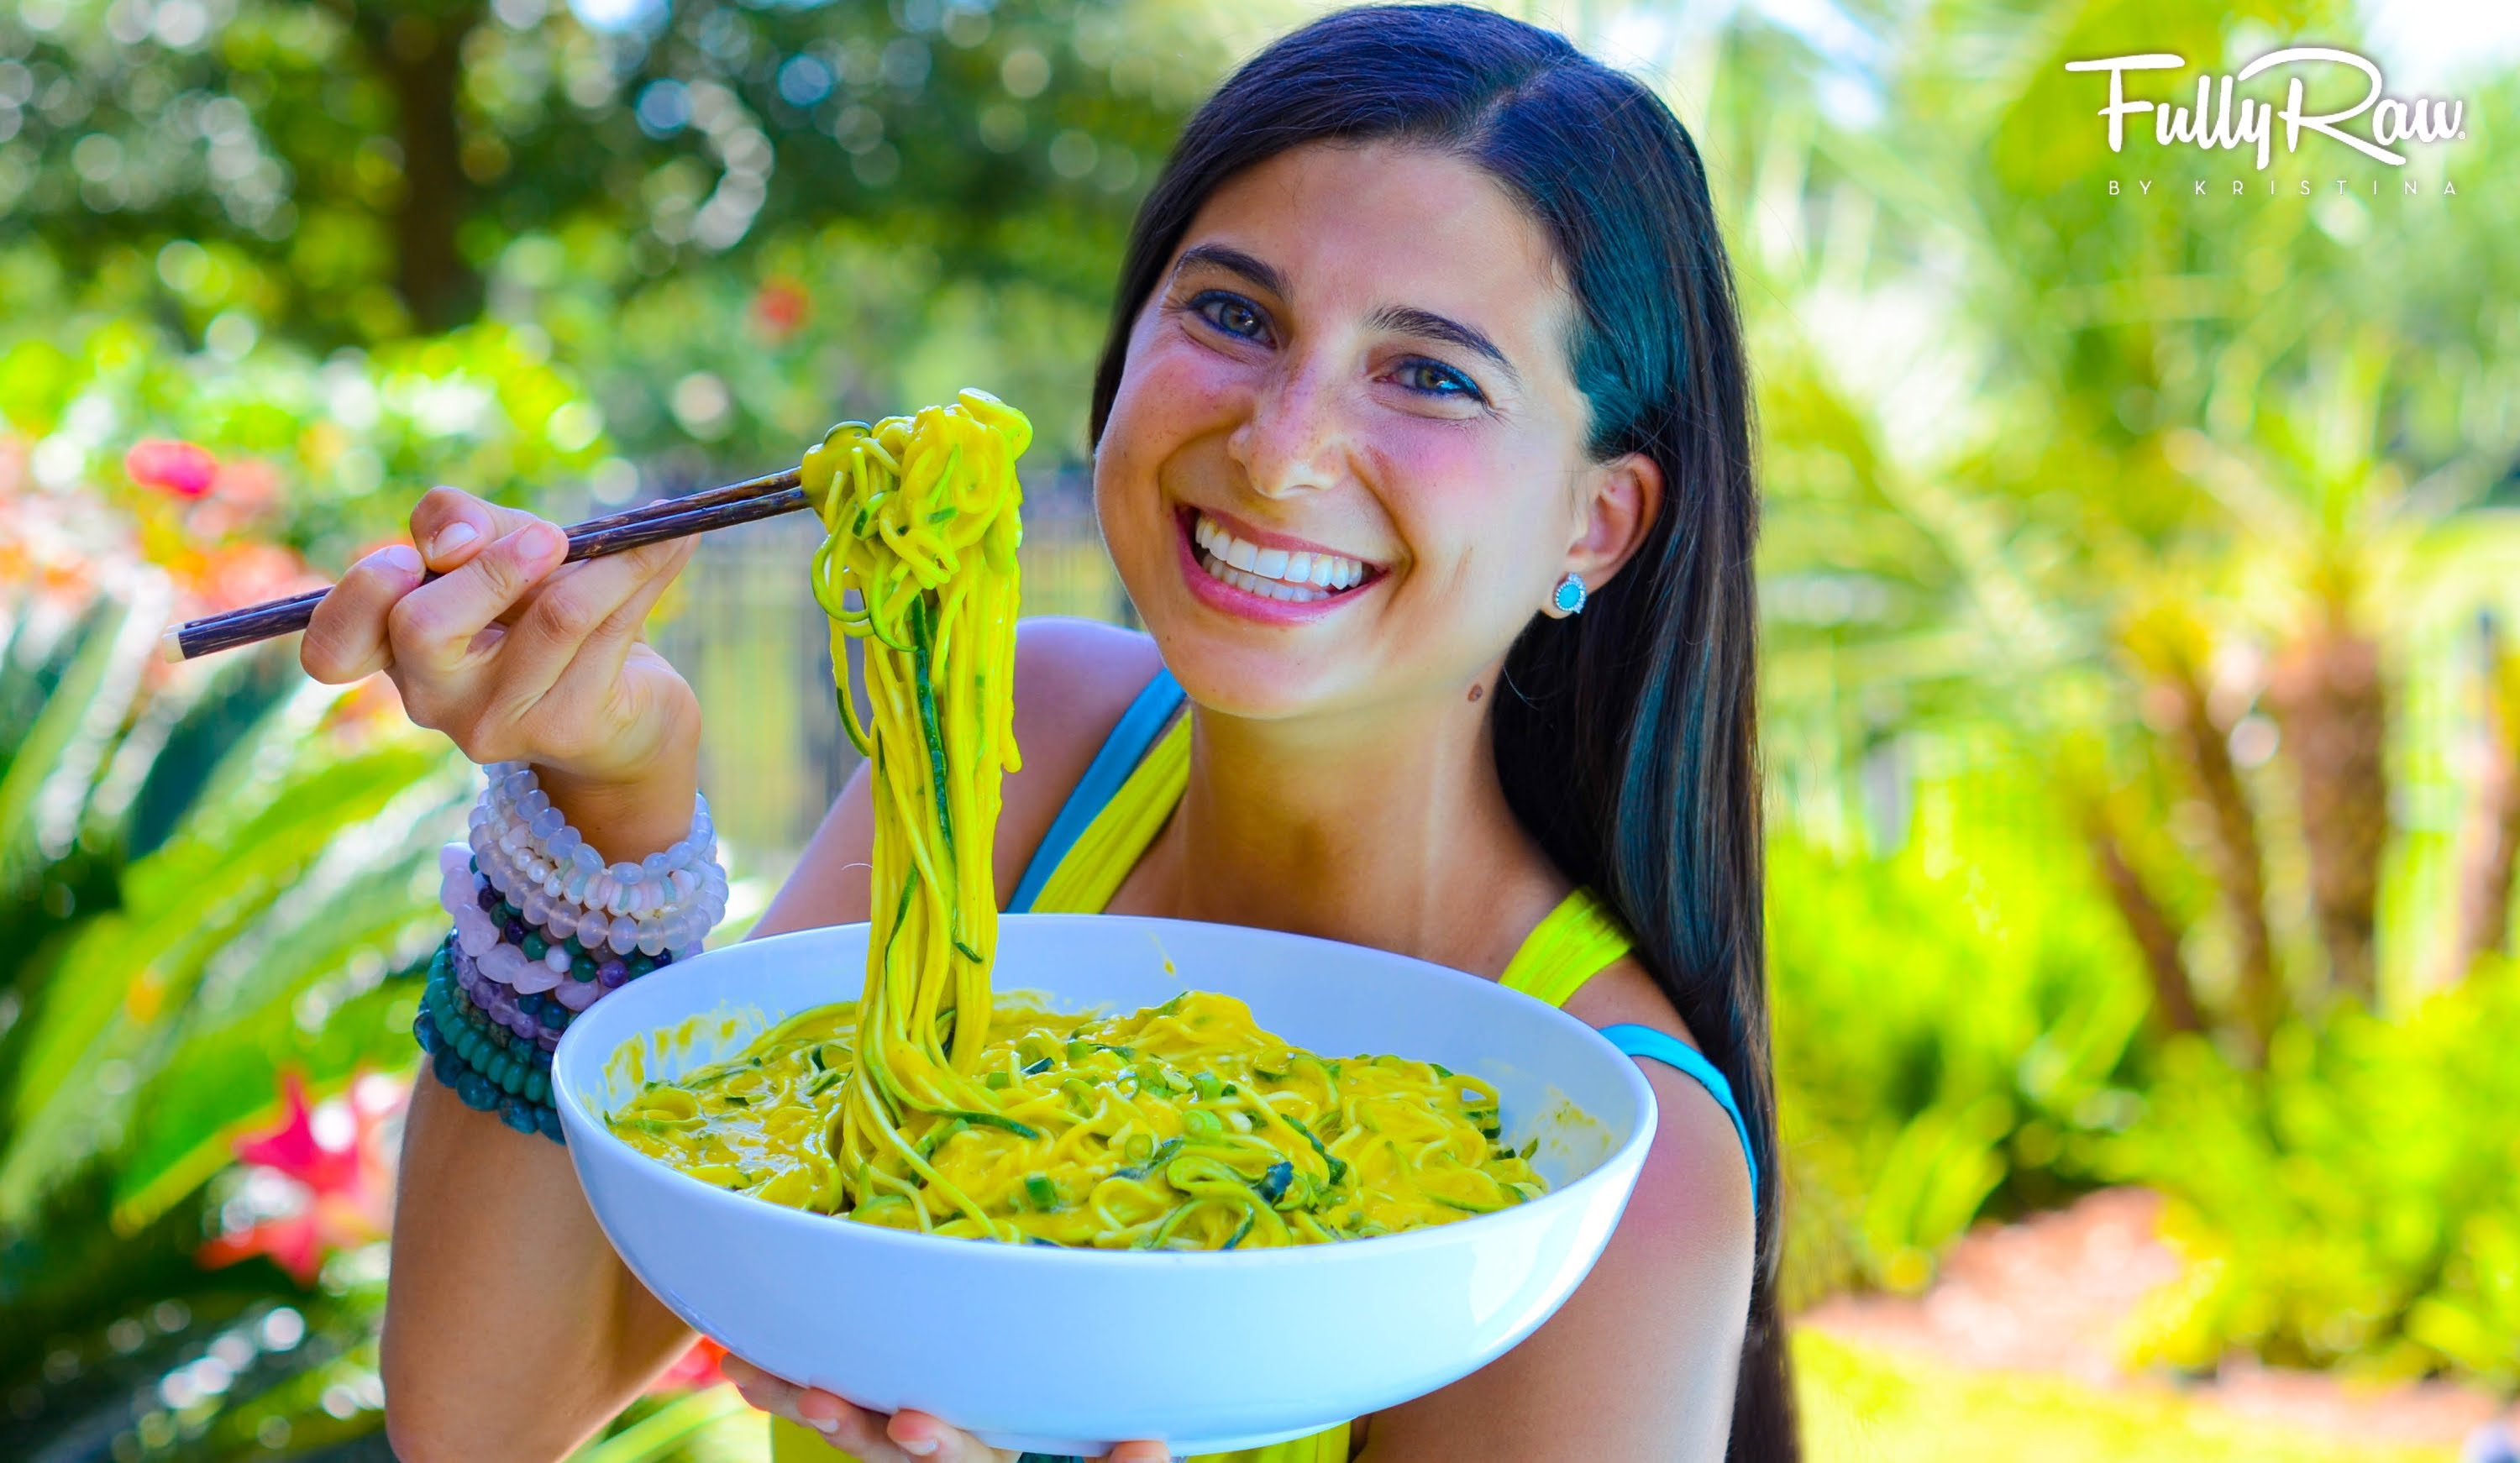 Youre going to love this fully raw mango avocado noodle salad youre going to love this fully raw mango avocado noodle salad recipe video forumfinder Image collections